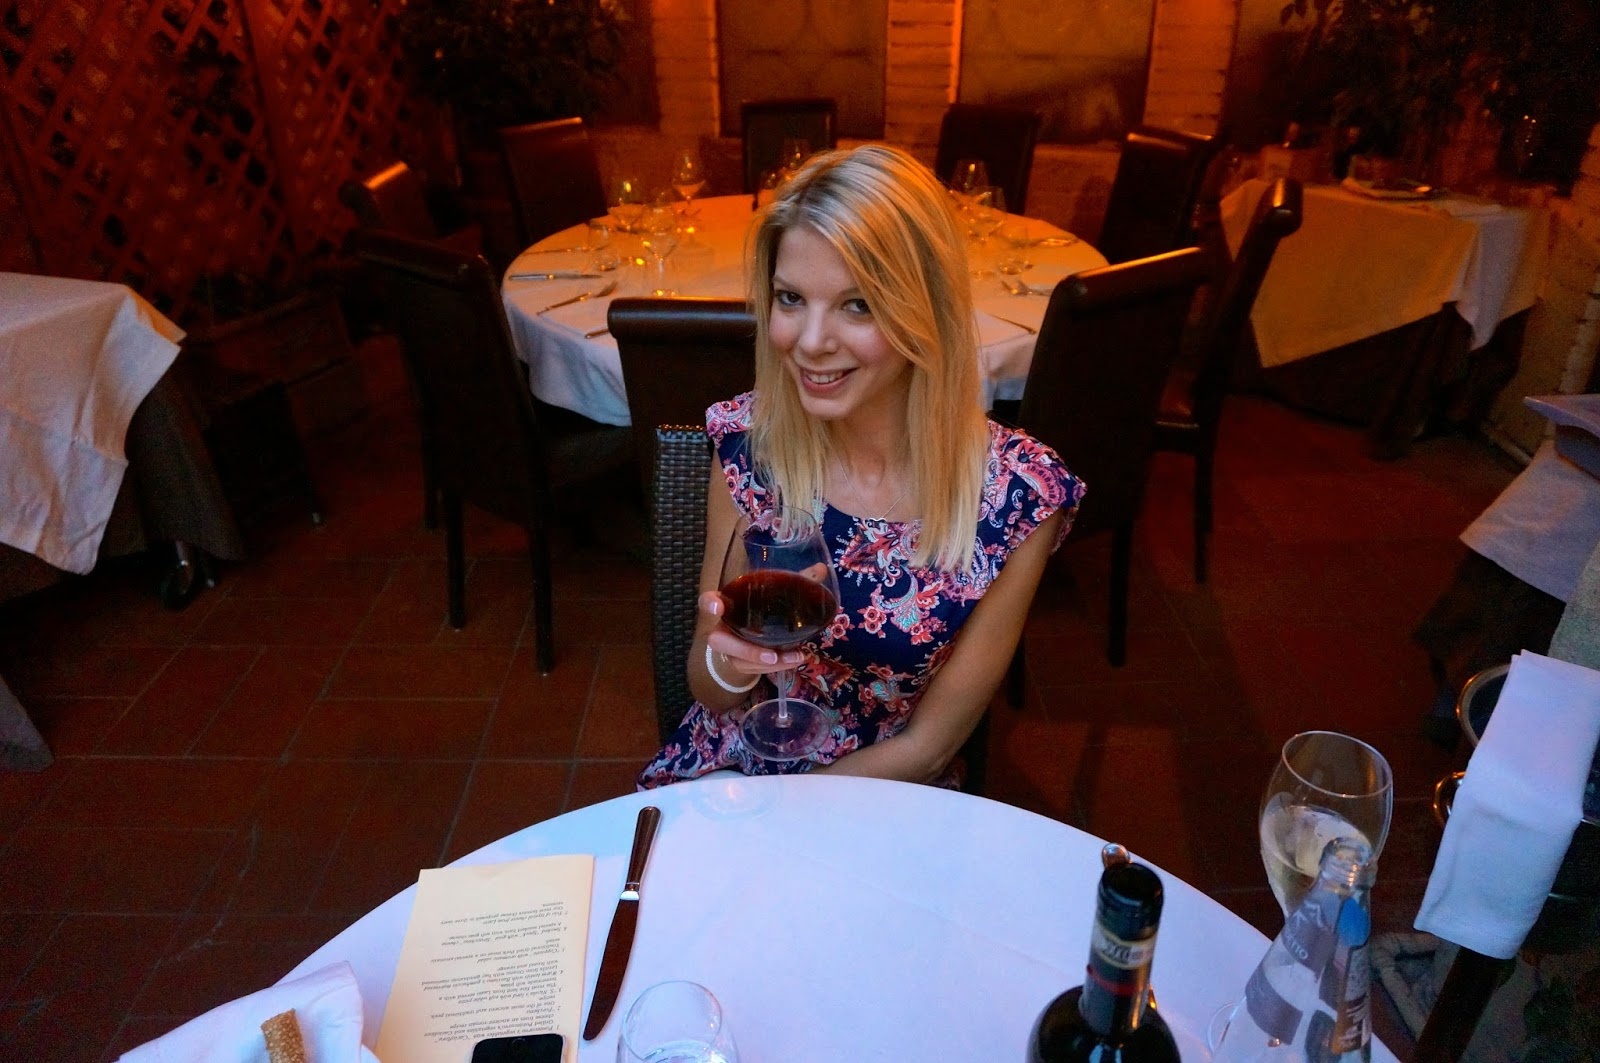 Our Honeymoon: My Favourite Restaurant in the World